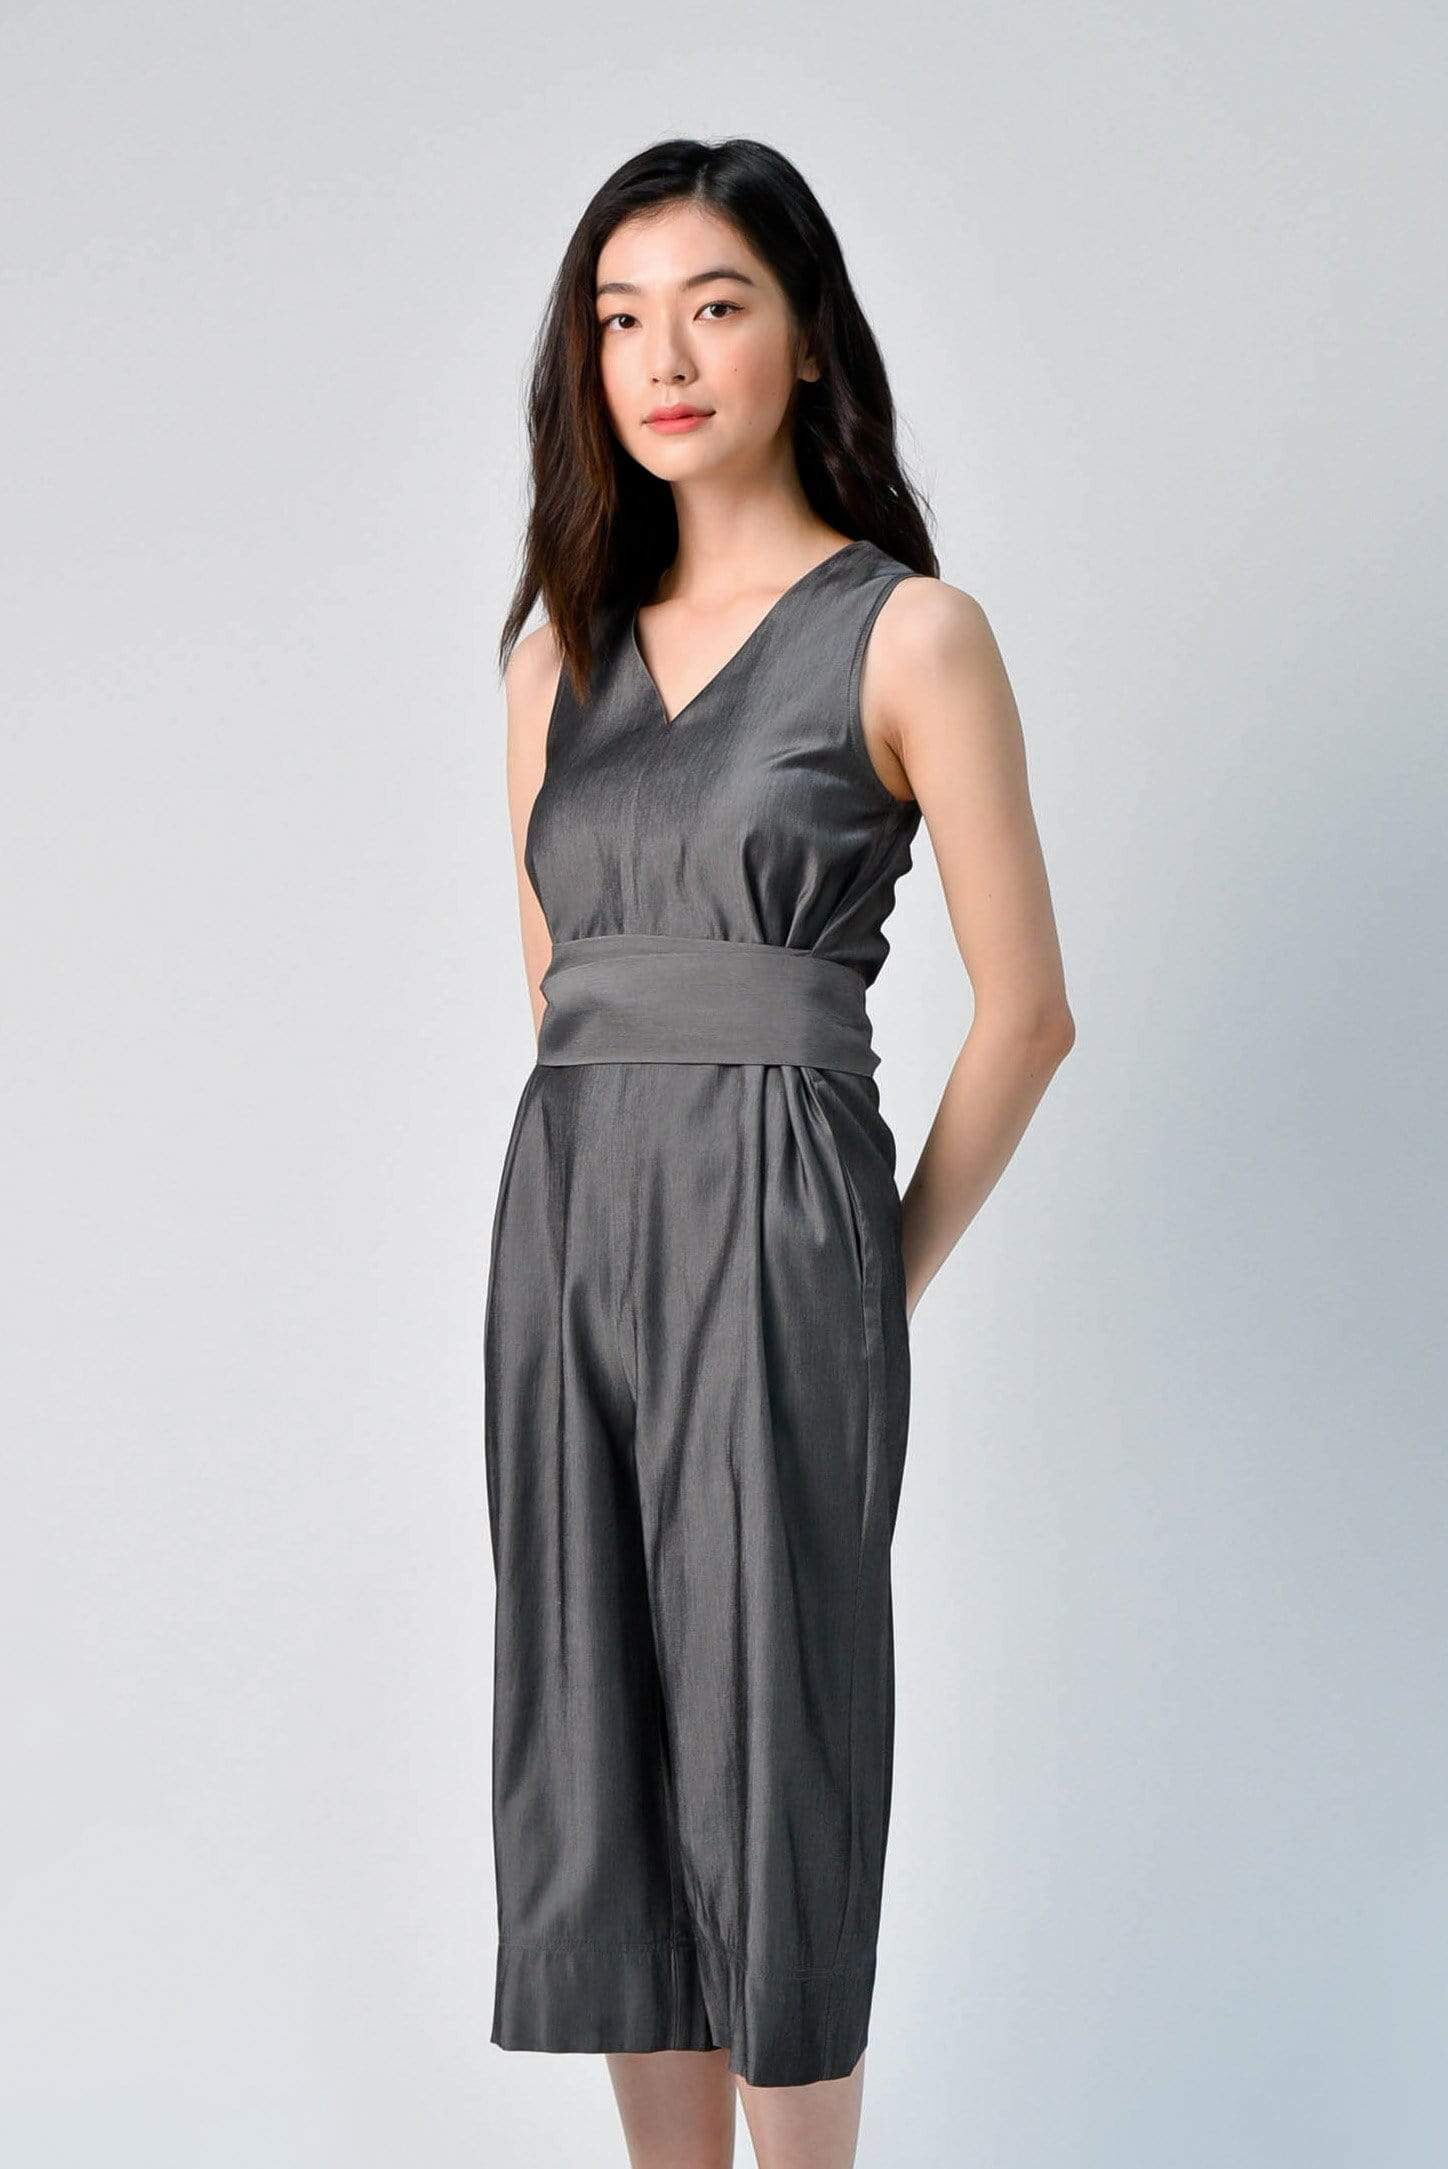 AWE One Piece YEJIN TIE-SASH ROMPER IN GUN METAL